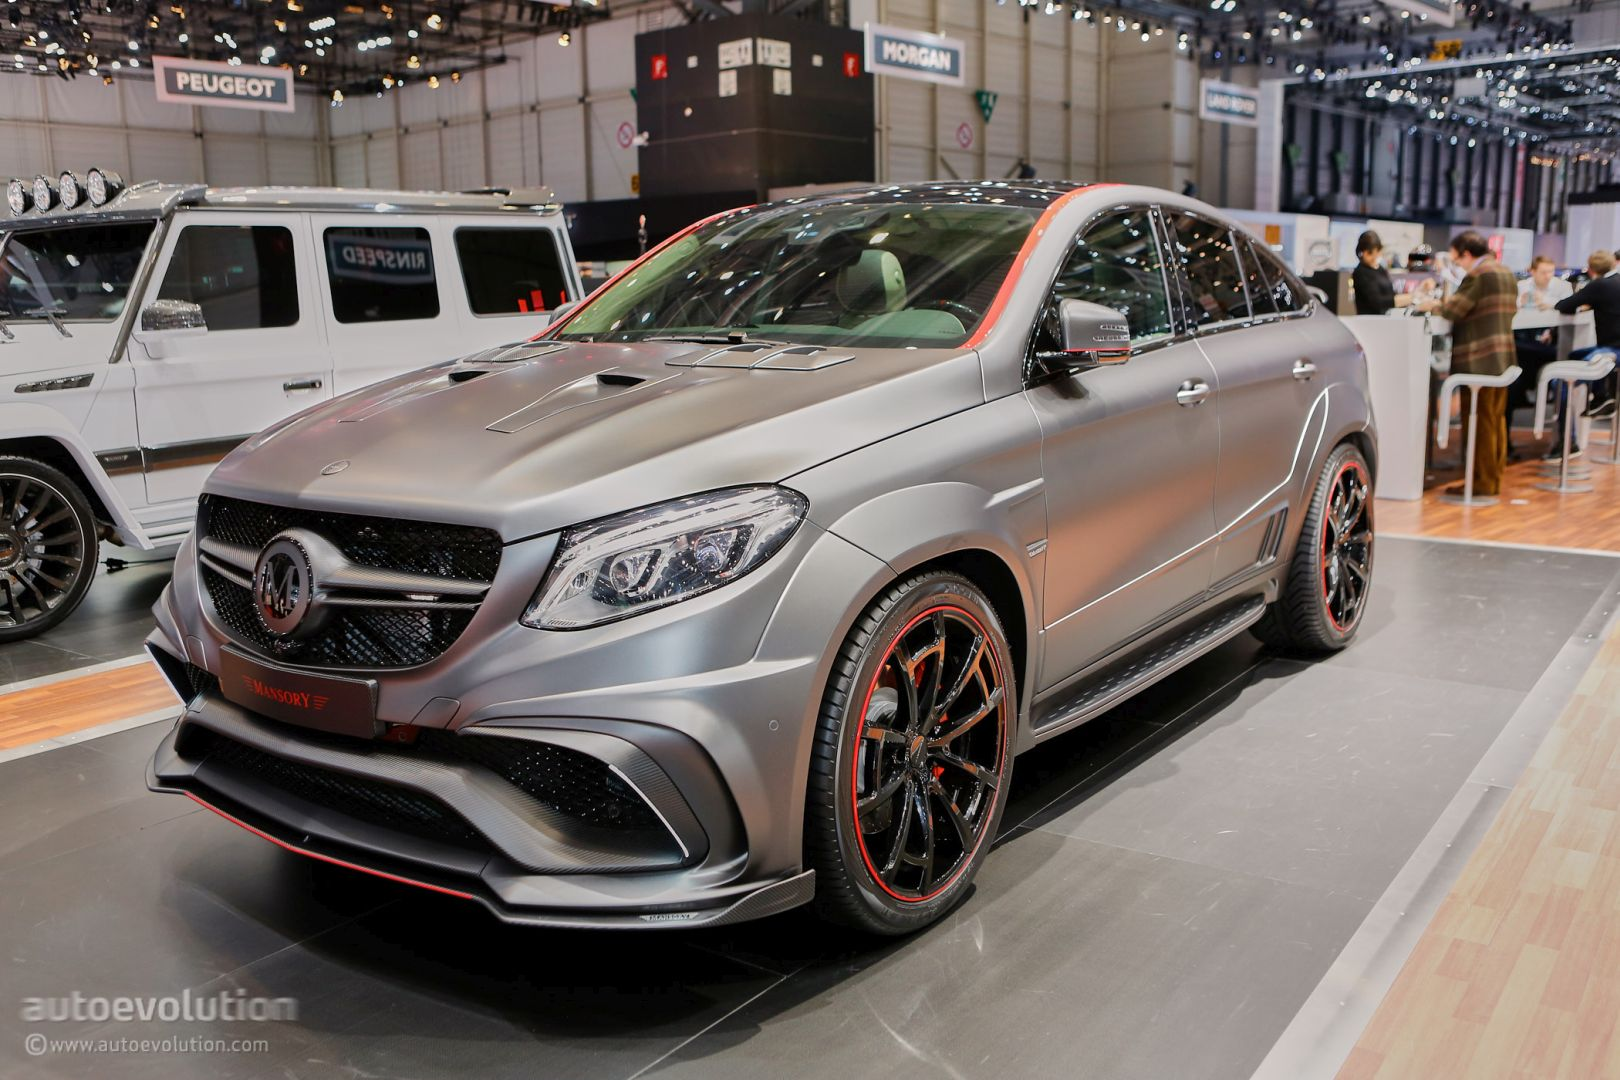 Mercedes B Class Electric >> Mansory's Mercedes-AMG Geneva Booth Sees GLE63 Coupe ...